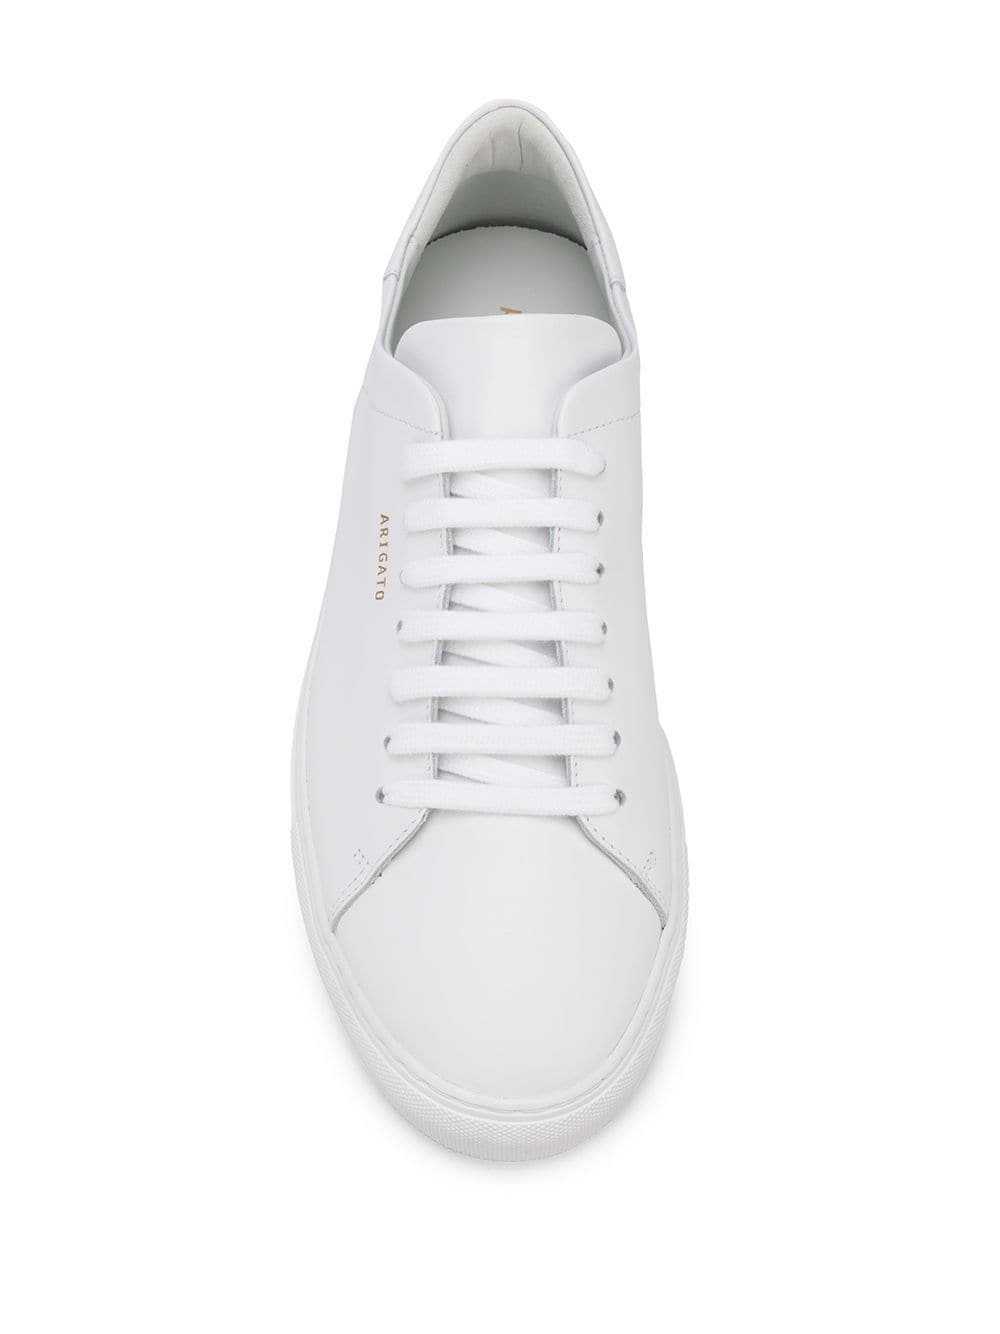 Picture of Axel Arigato   Clean 90 Sneakers